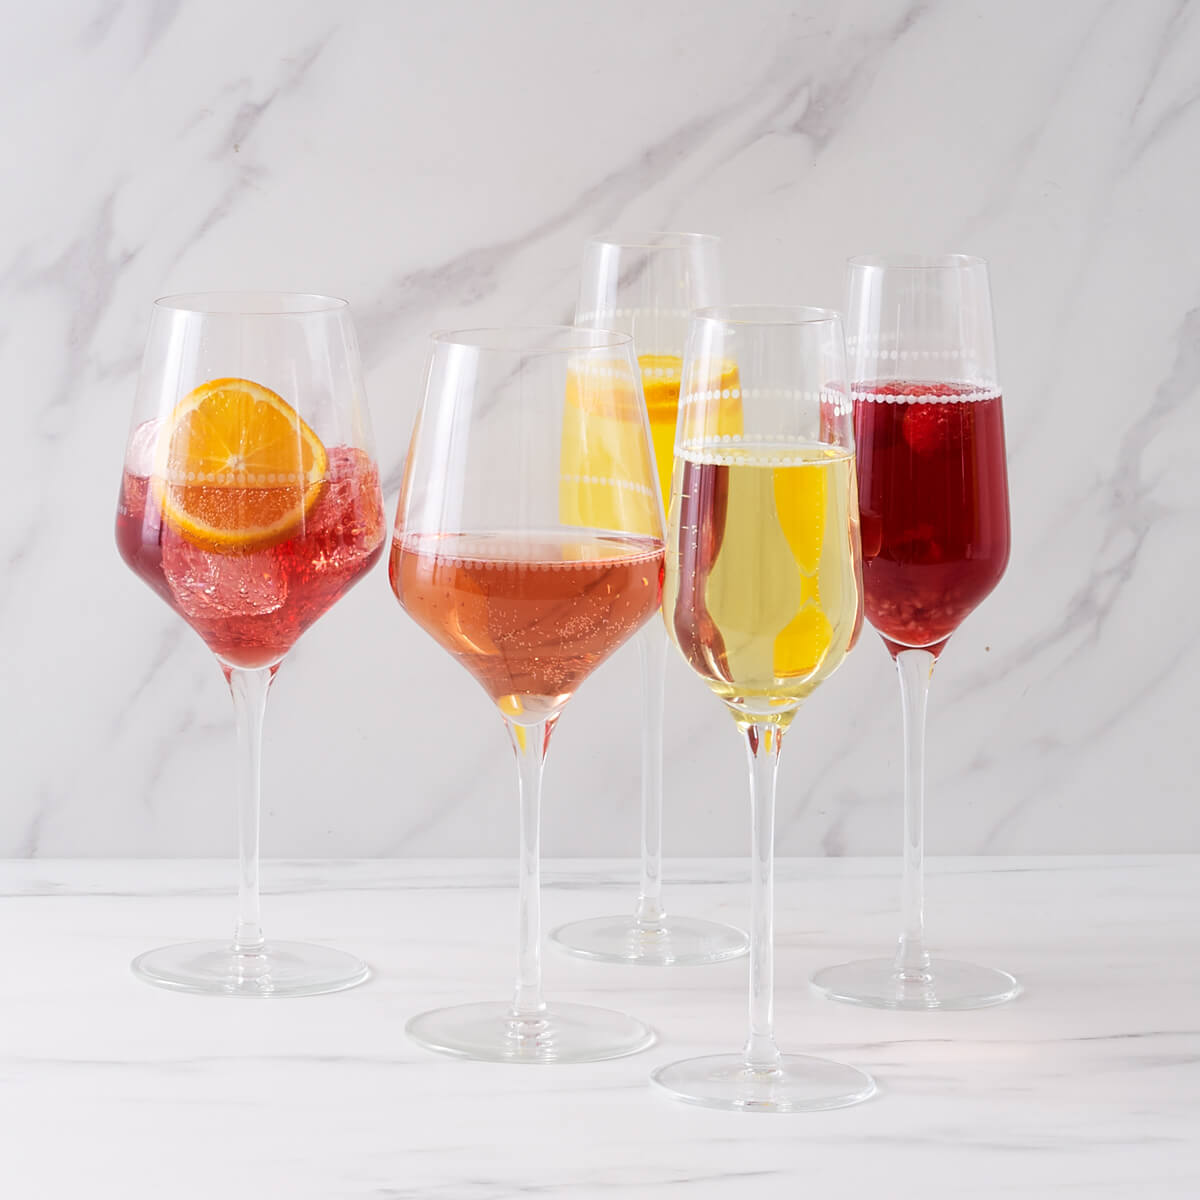 Champagne Flutes - lifestyle